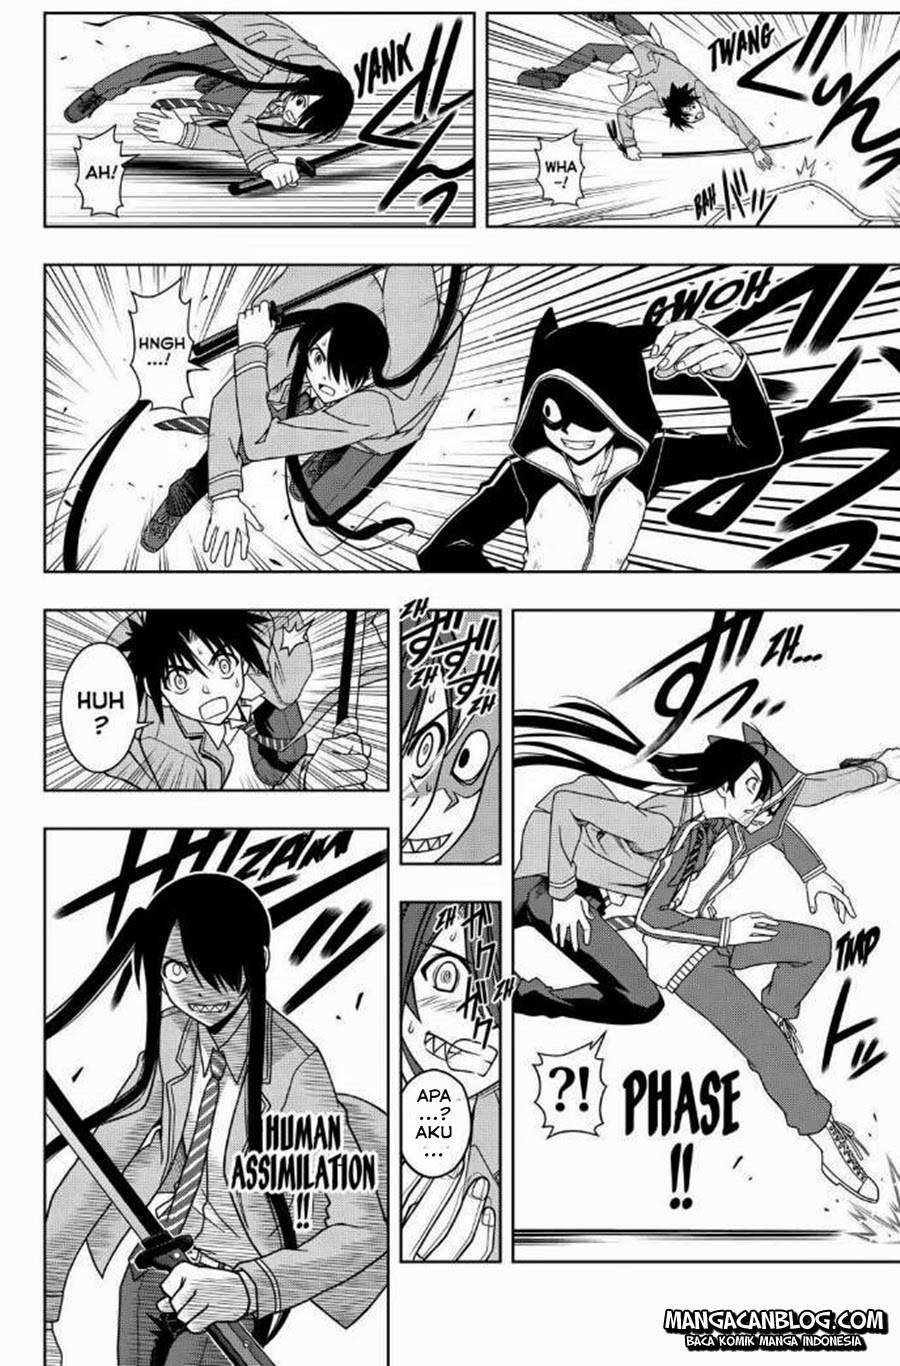 Komik uq holder 047 - psion vs immortal 48 Indonesia uq holder 047 - psion vs immortal Terbaru 8|Baca Manga Komik Indonesia